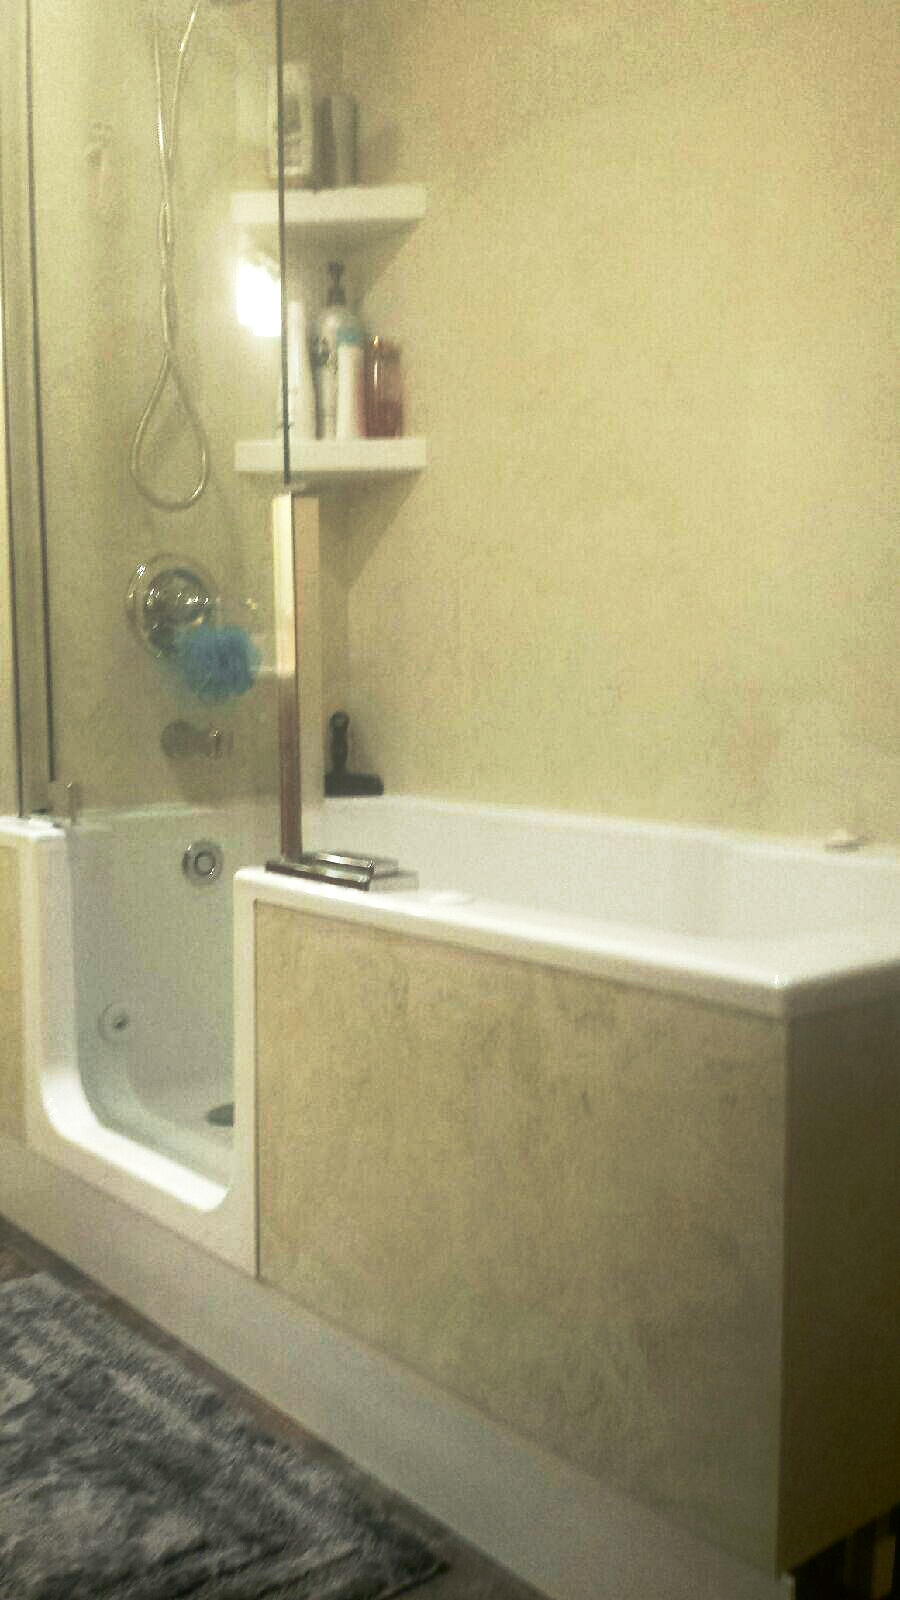 Acryline Twinline Tub and Shower Door